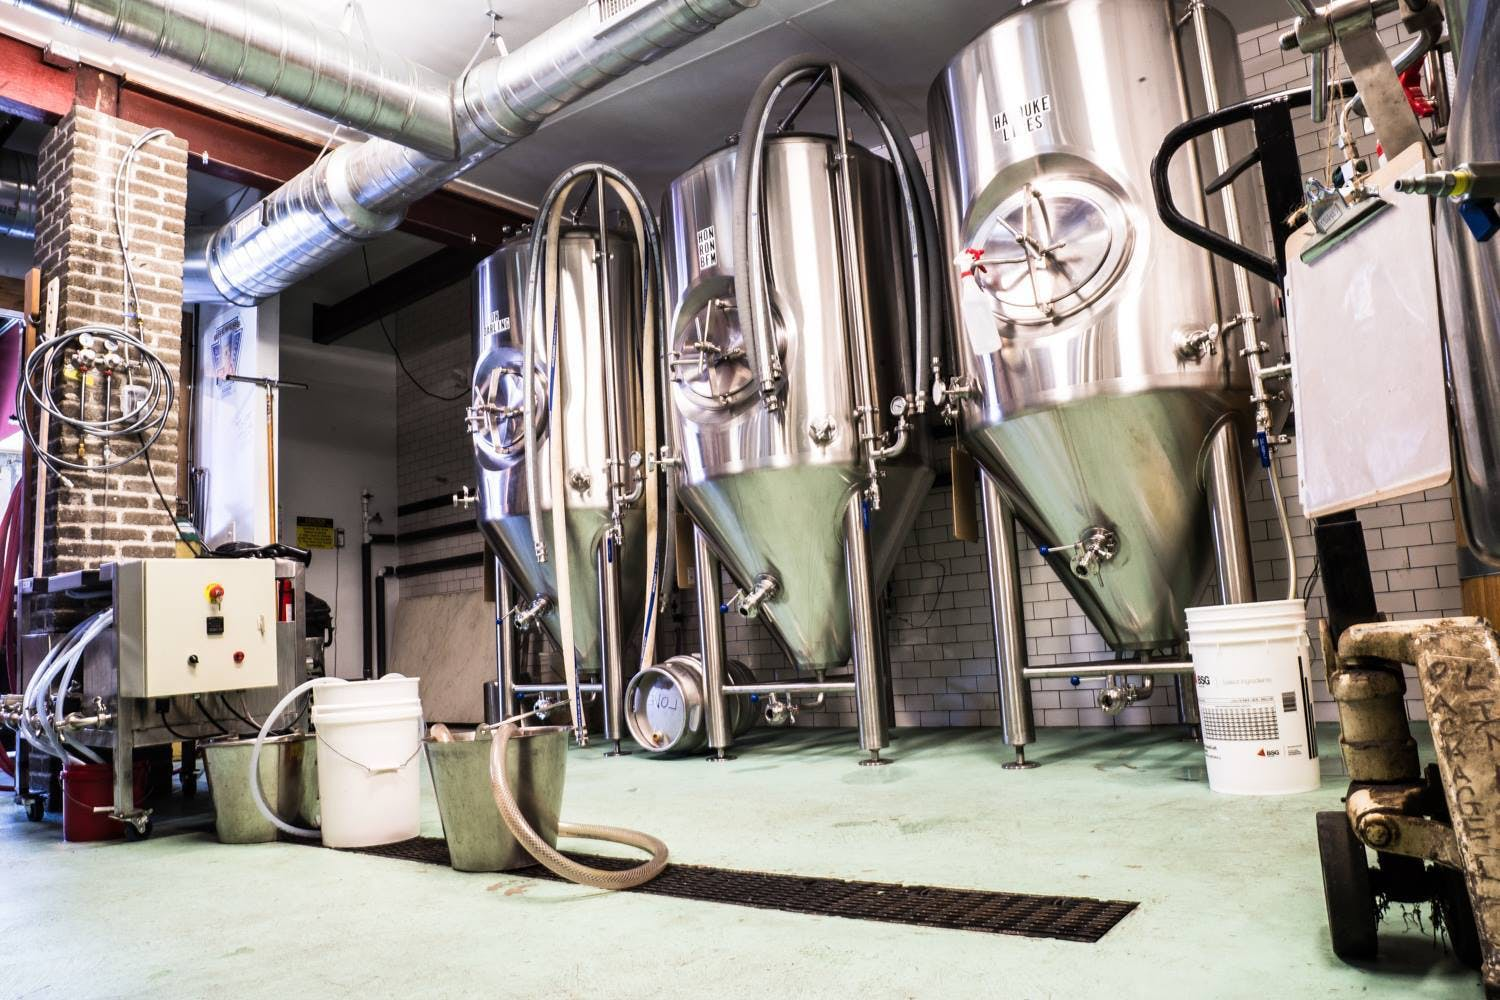 Systech Brewery Tanks Brewery tank sold by Systech Stainless Works, LLC [CLOSED]